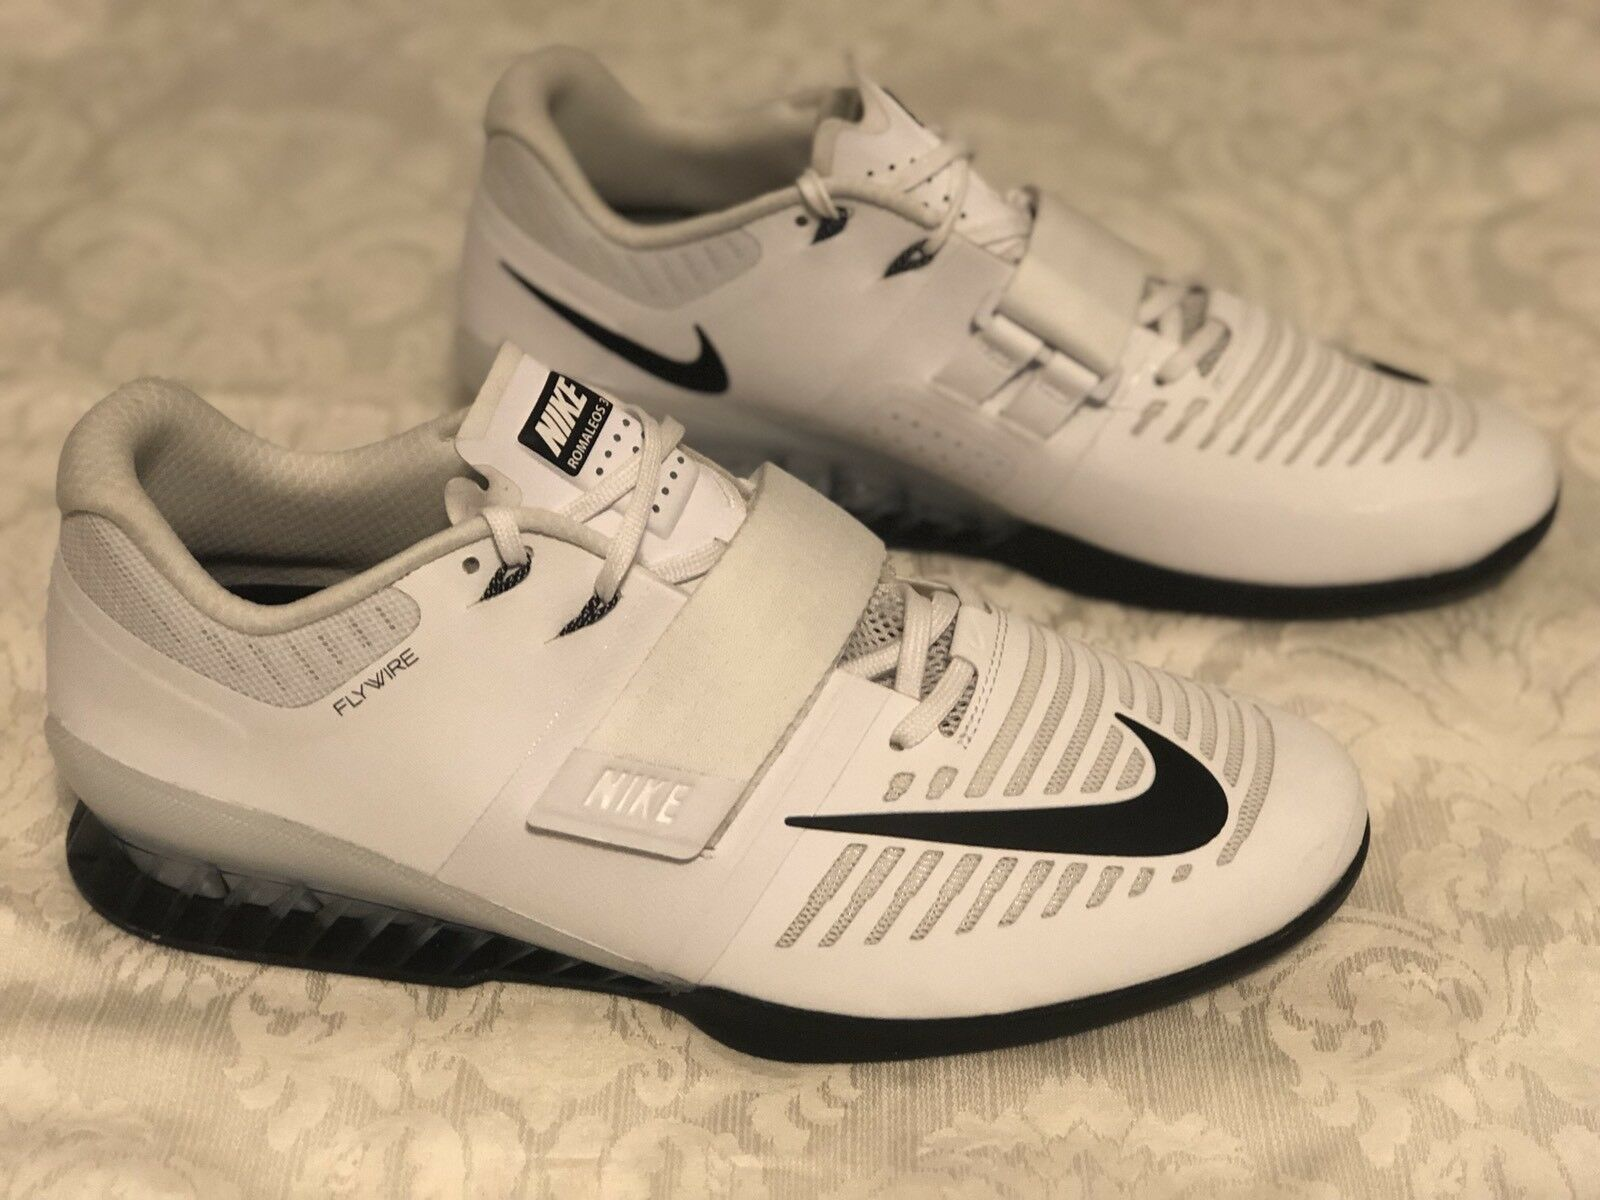 New Size 15 Men's Nike Romaleos 3 Weightlifting Shoes 852933-100 White